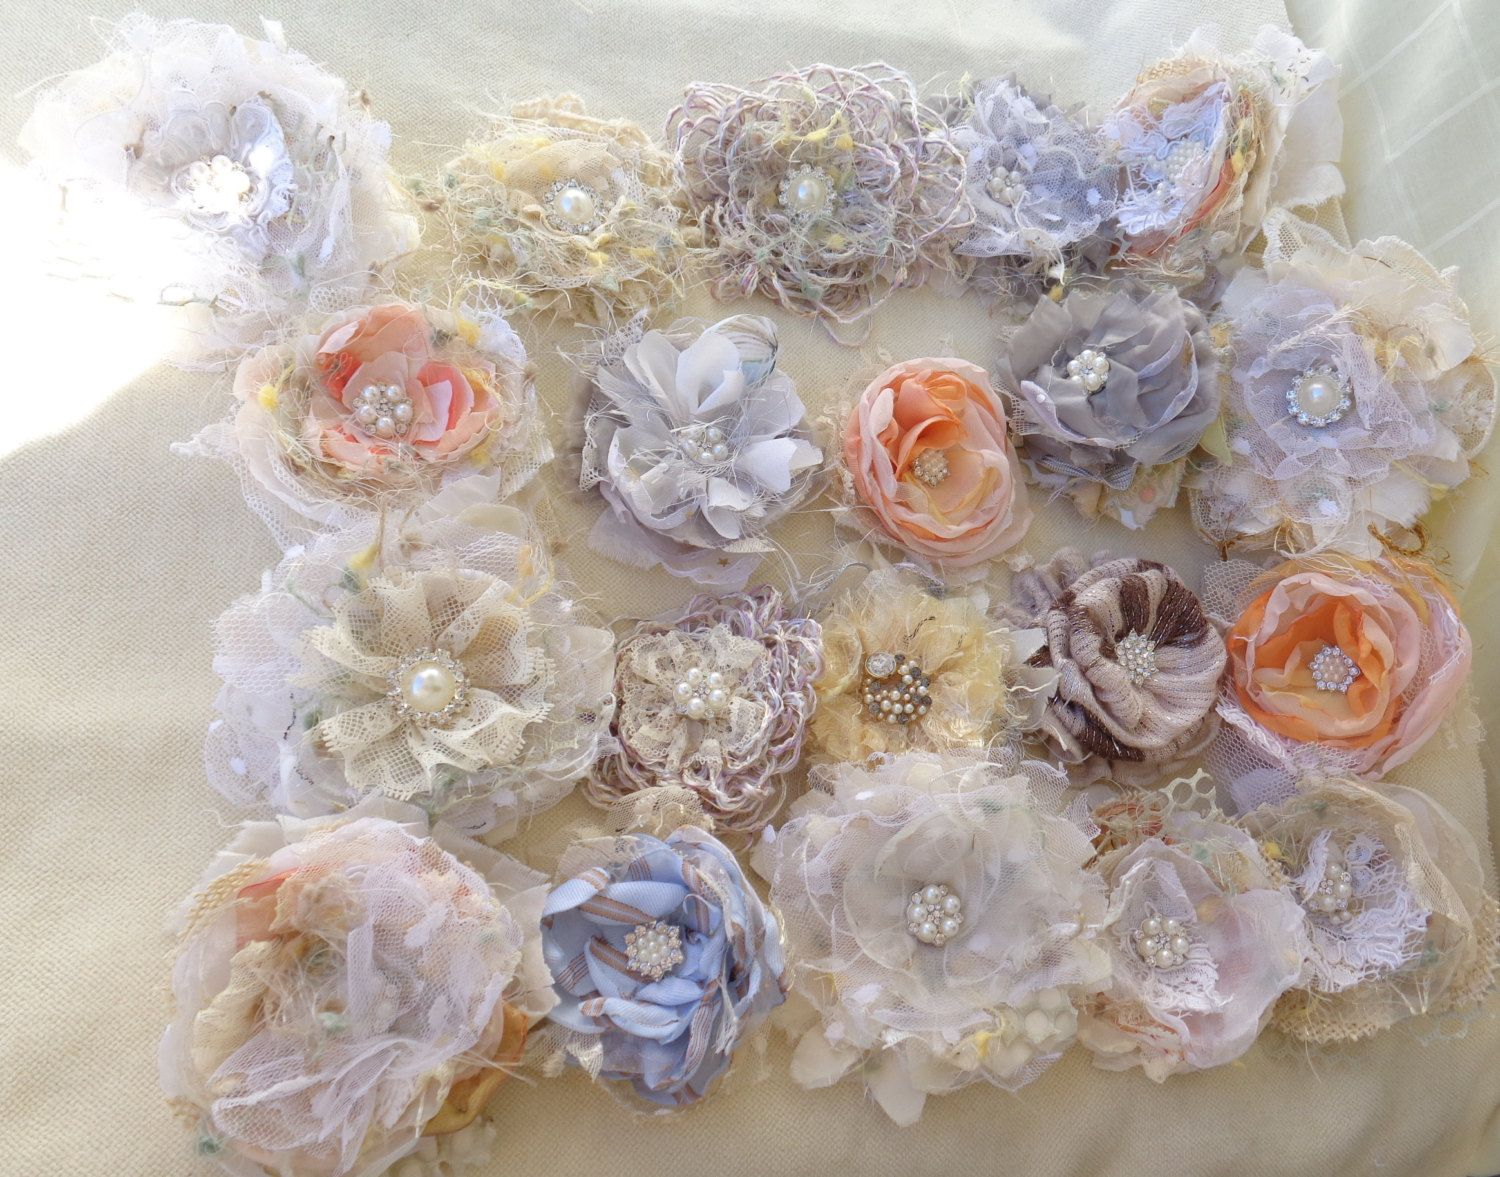 Fabric flower floral supplies fleur de tissus wedding flower fabric flower floral supplies fleur de tissus wedding flower crown supplies wedding supplies shabby chic flowers izmirmasajfo